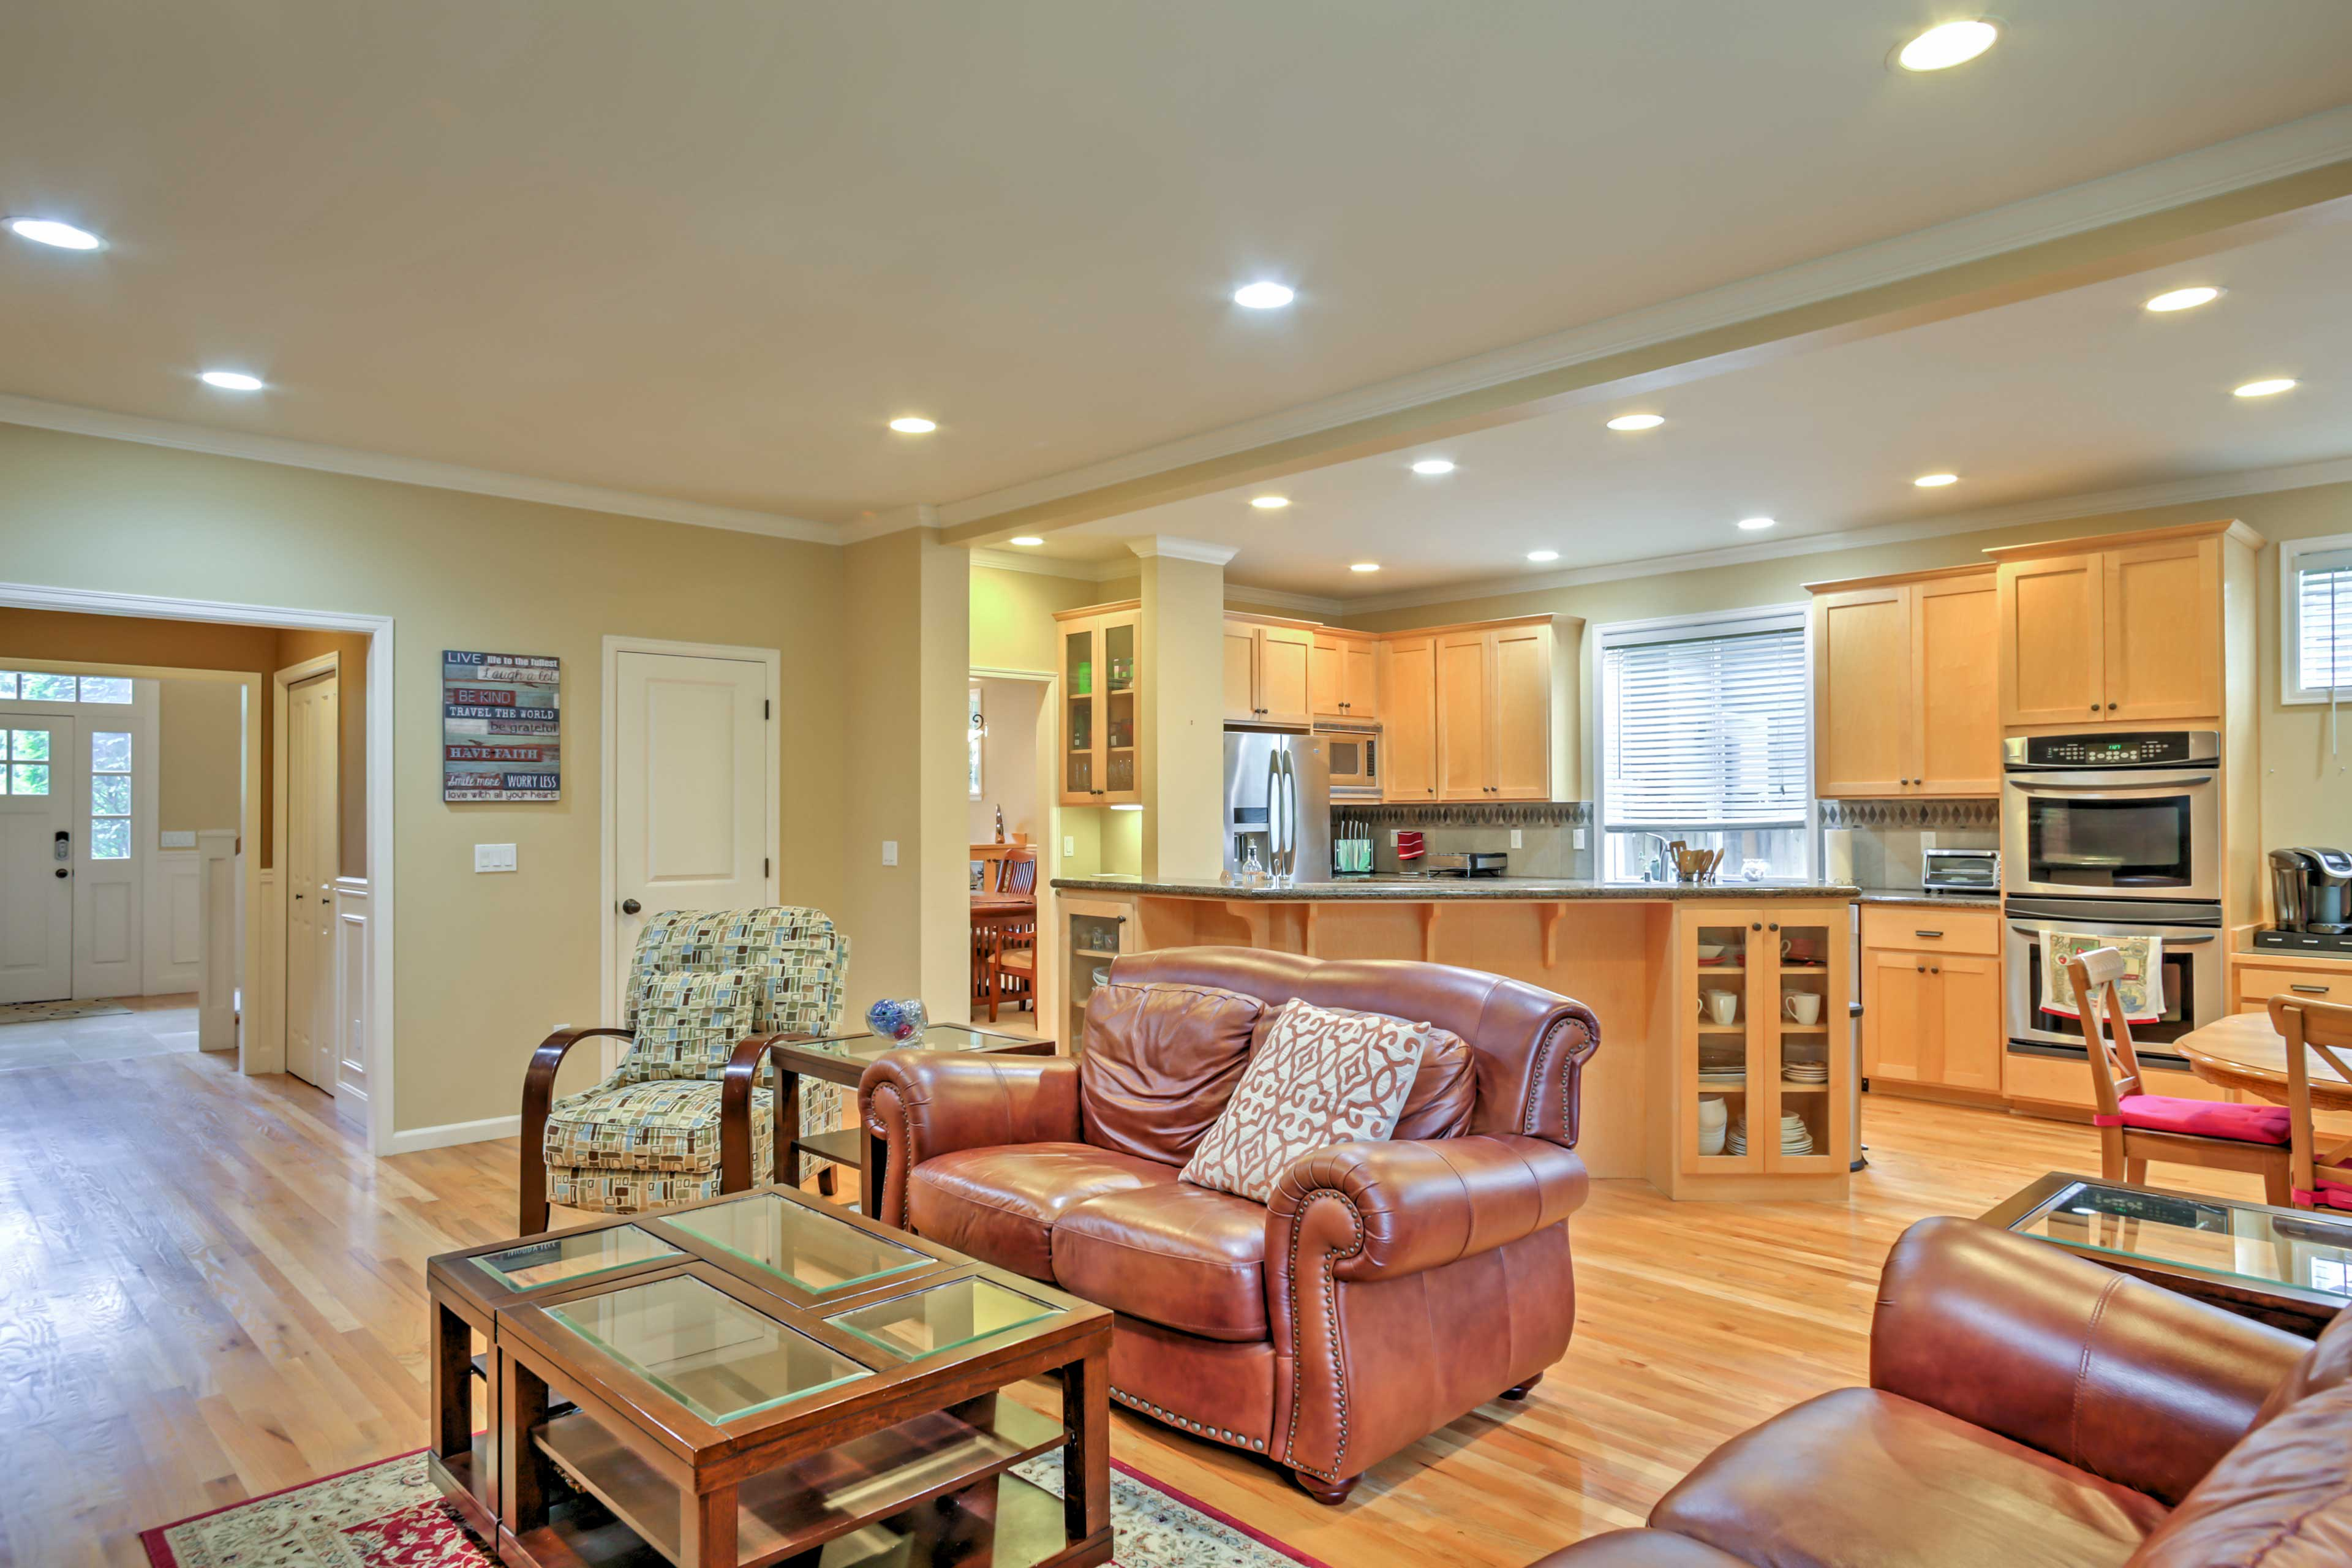 This Kirkland house will quickly become your favorite home-away-from-home.